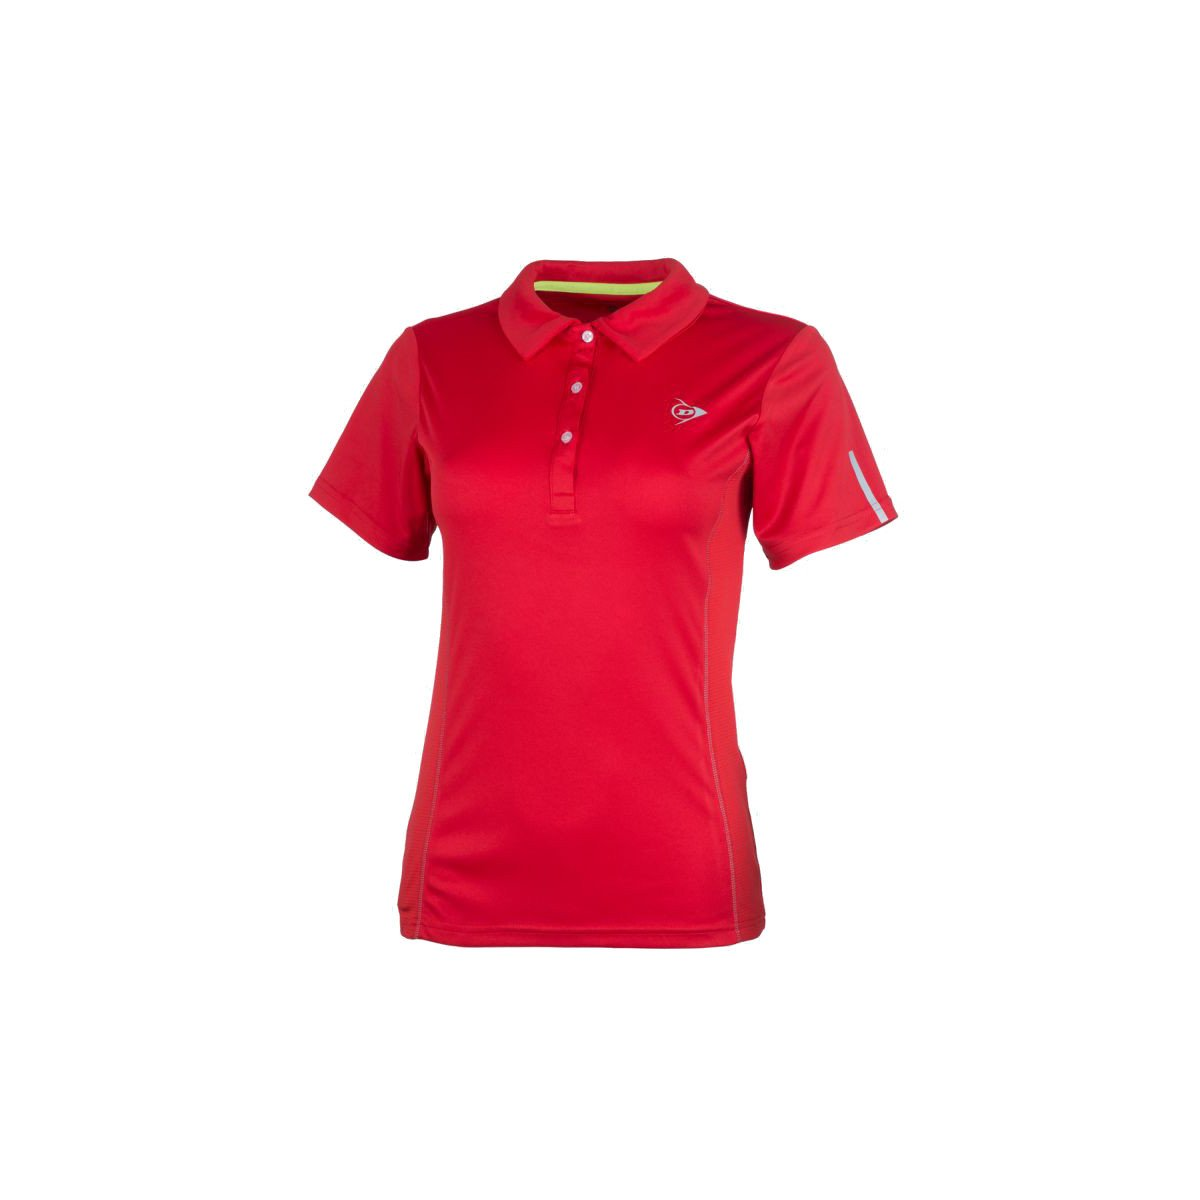 Dunlop Women's Club Collection Polo Tennis Shirt (Red)